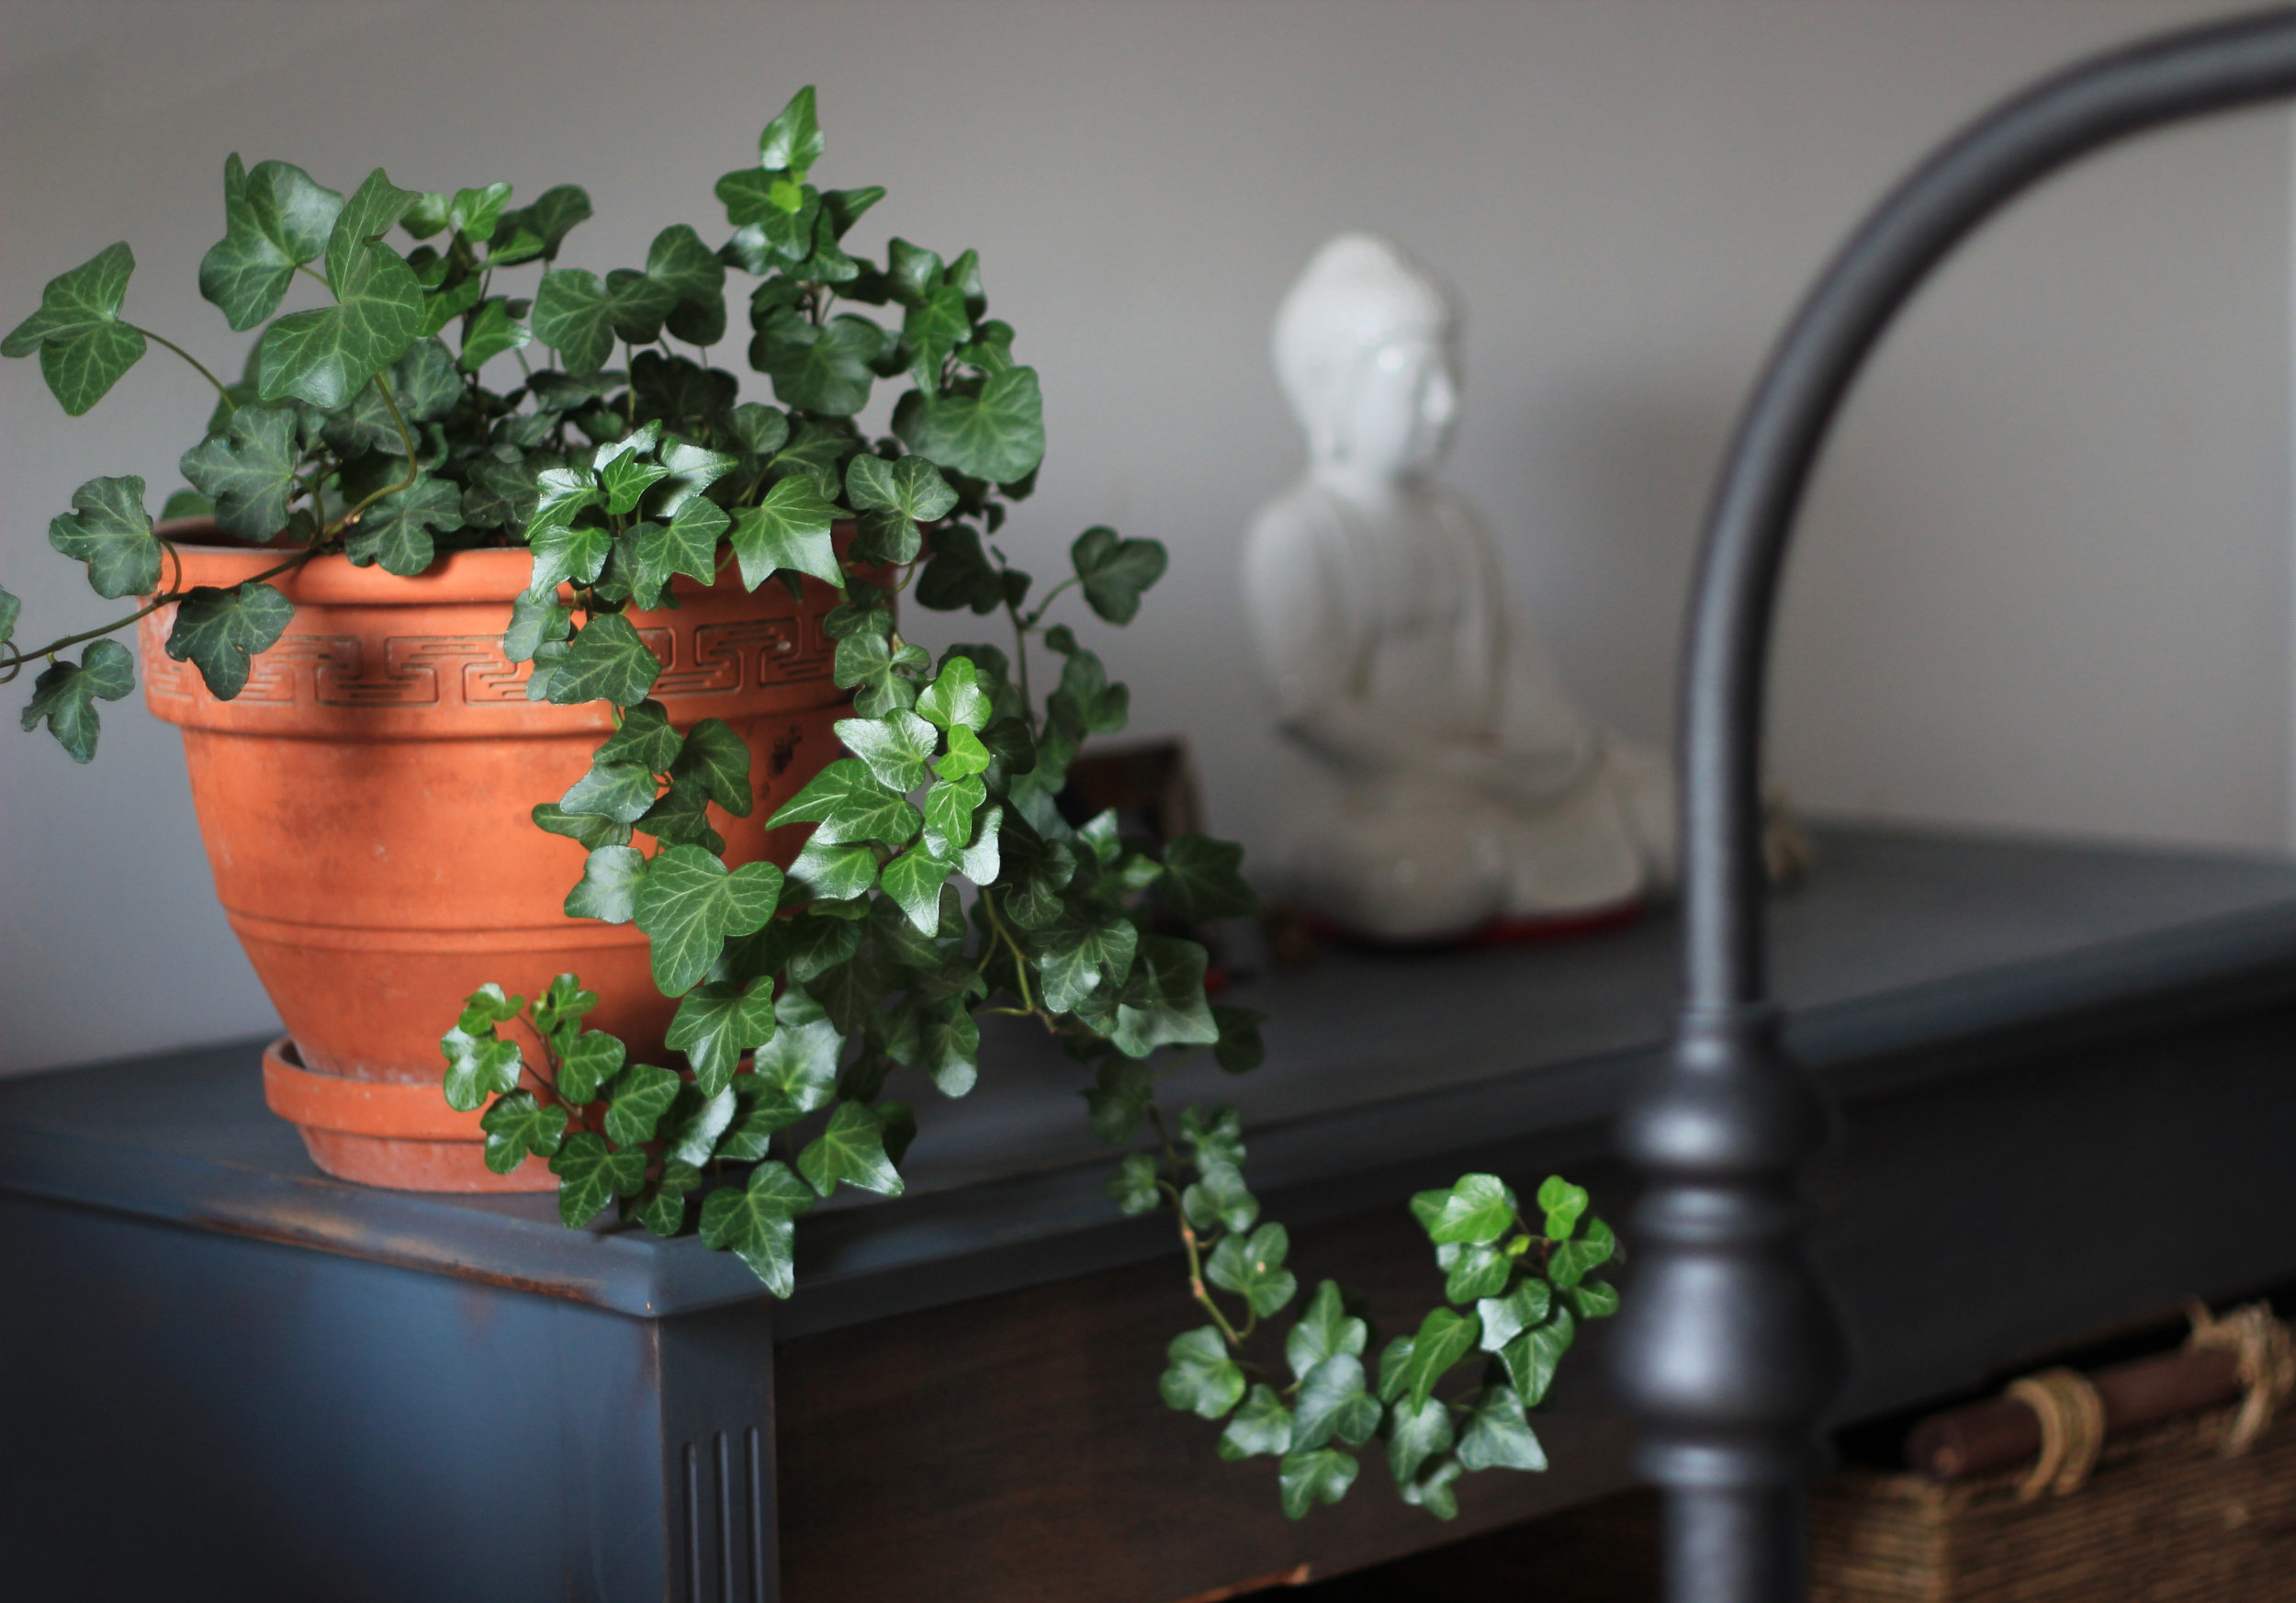 Vine in orange pot next to a white sitting Buddha figurine.